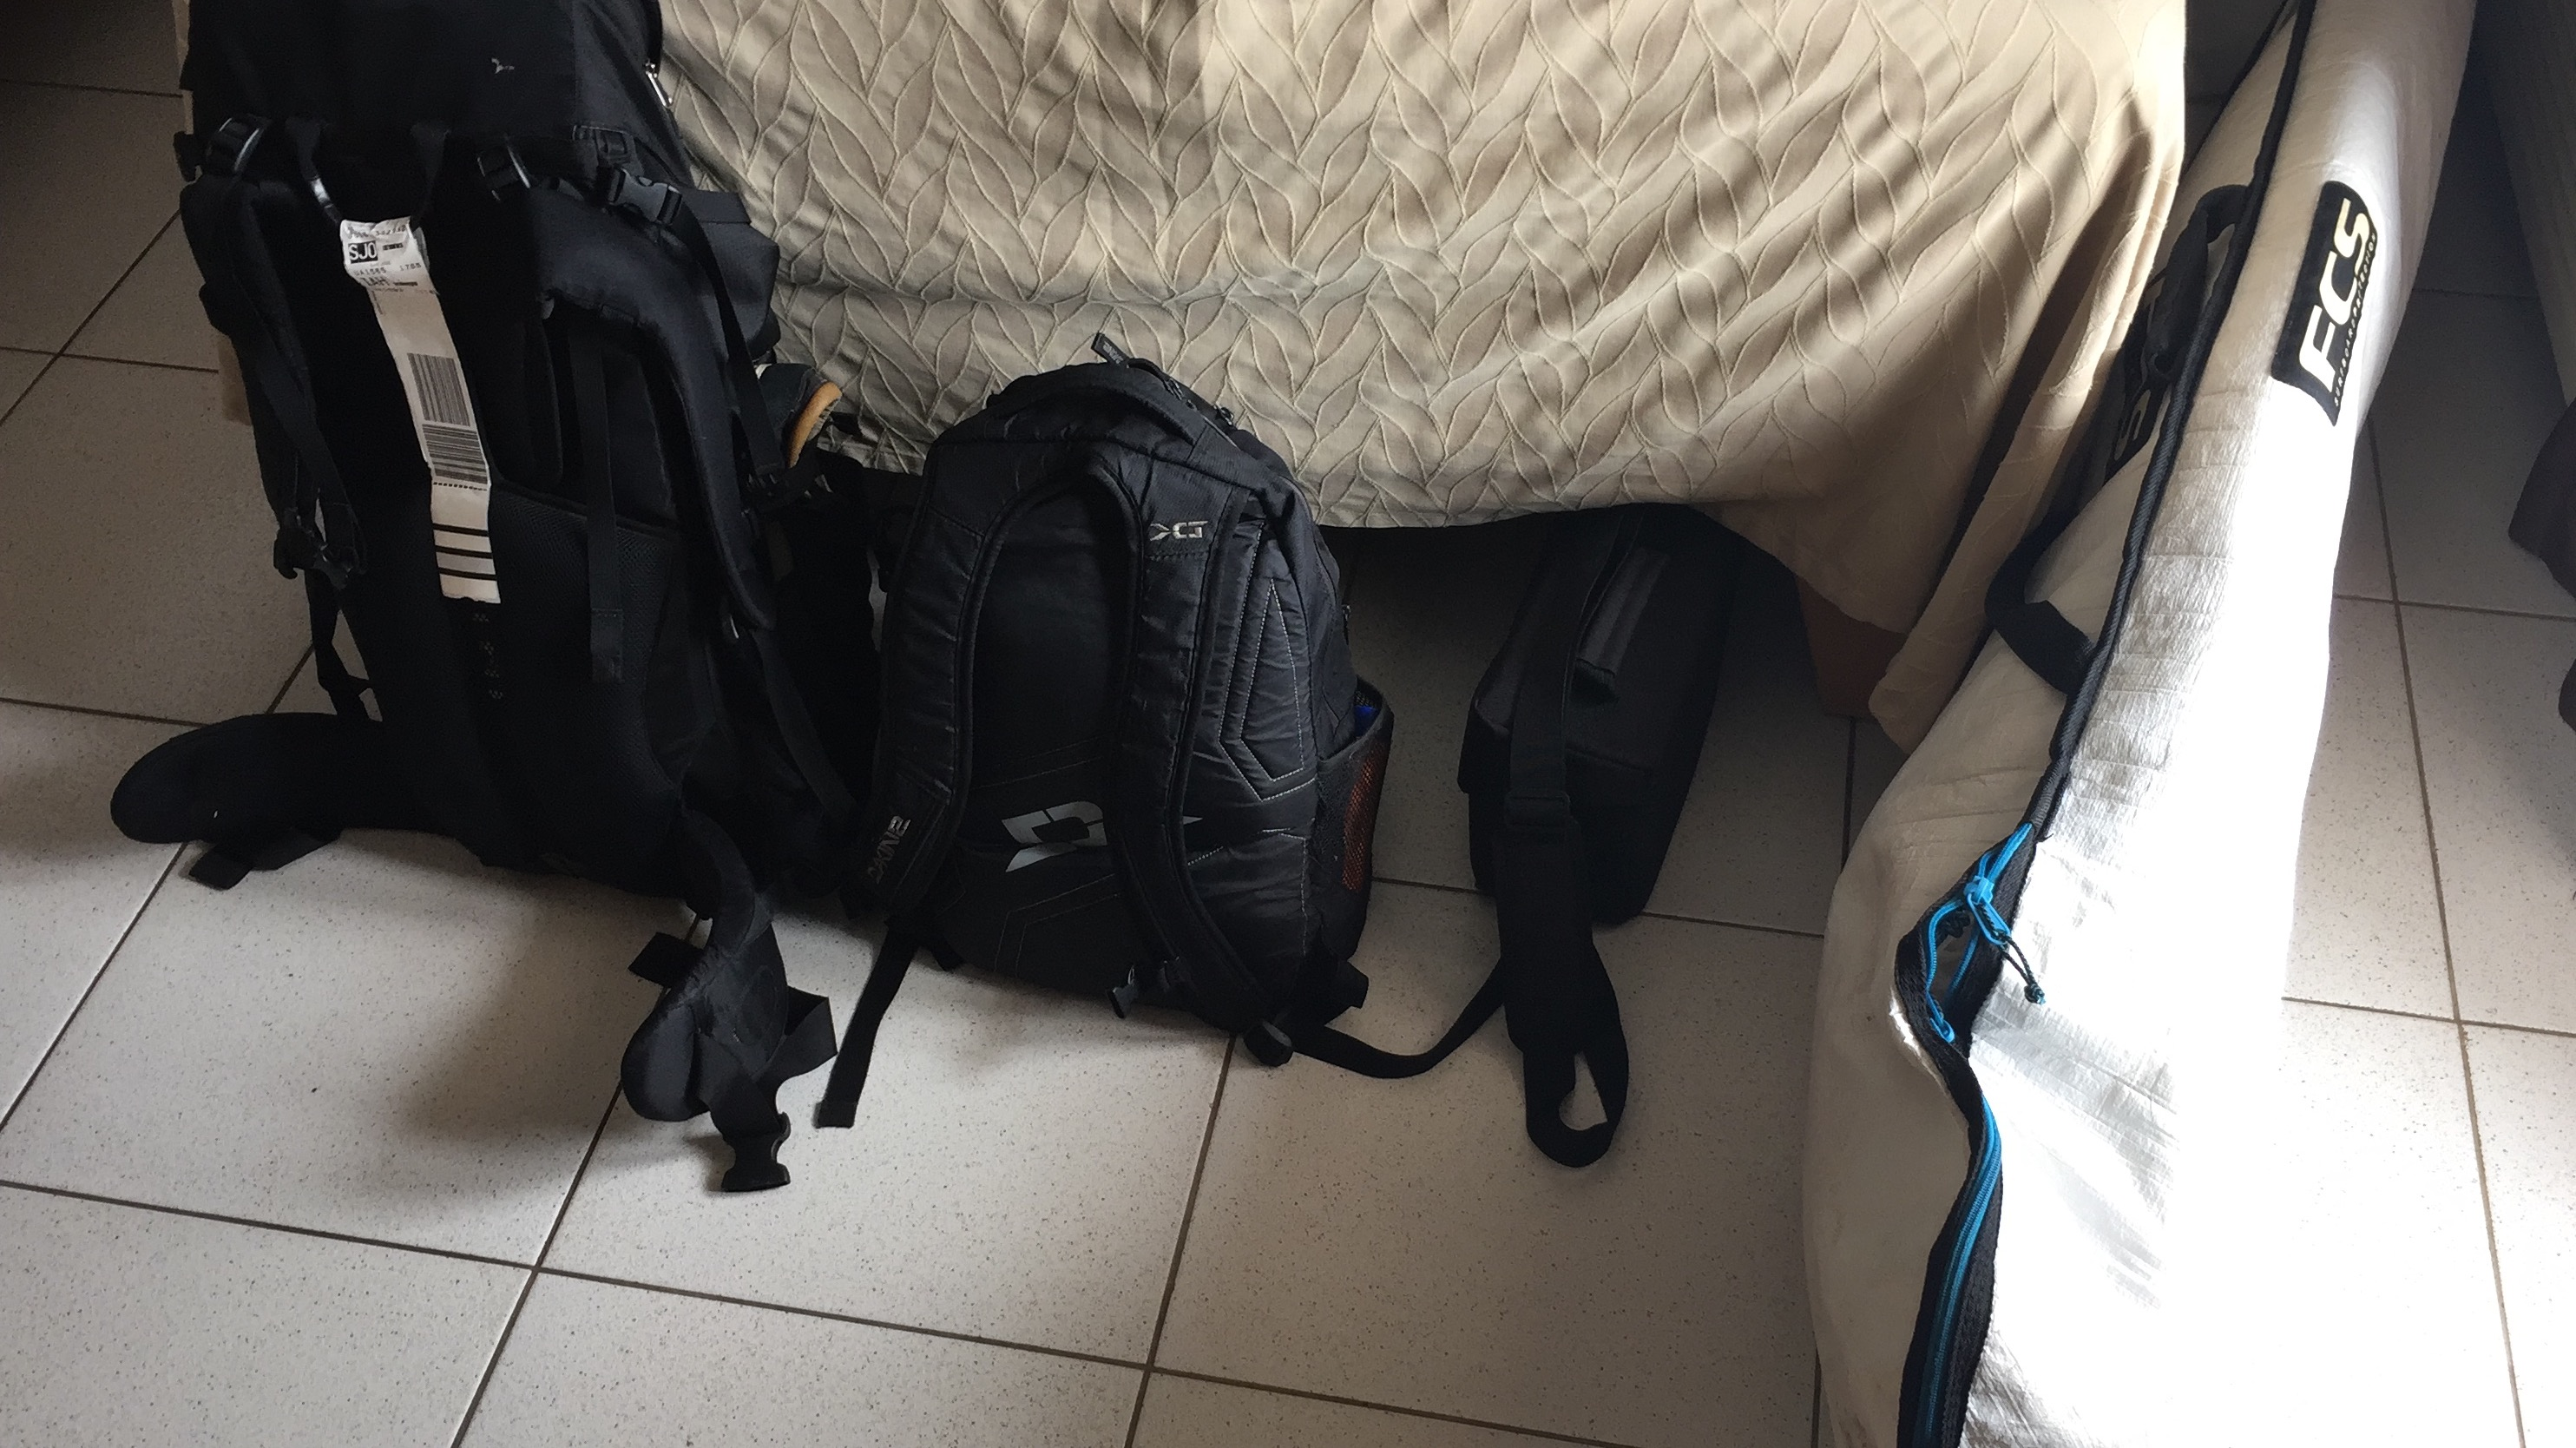 Two backpacks and a surfboard sit on the ground of a hotel room in Costa Rica.